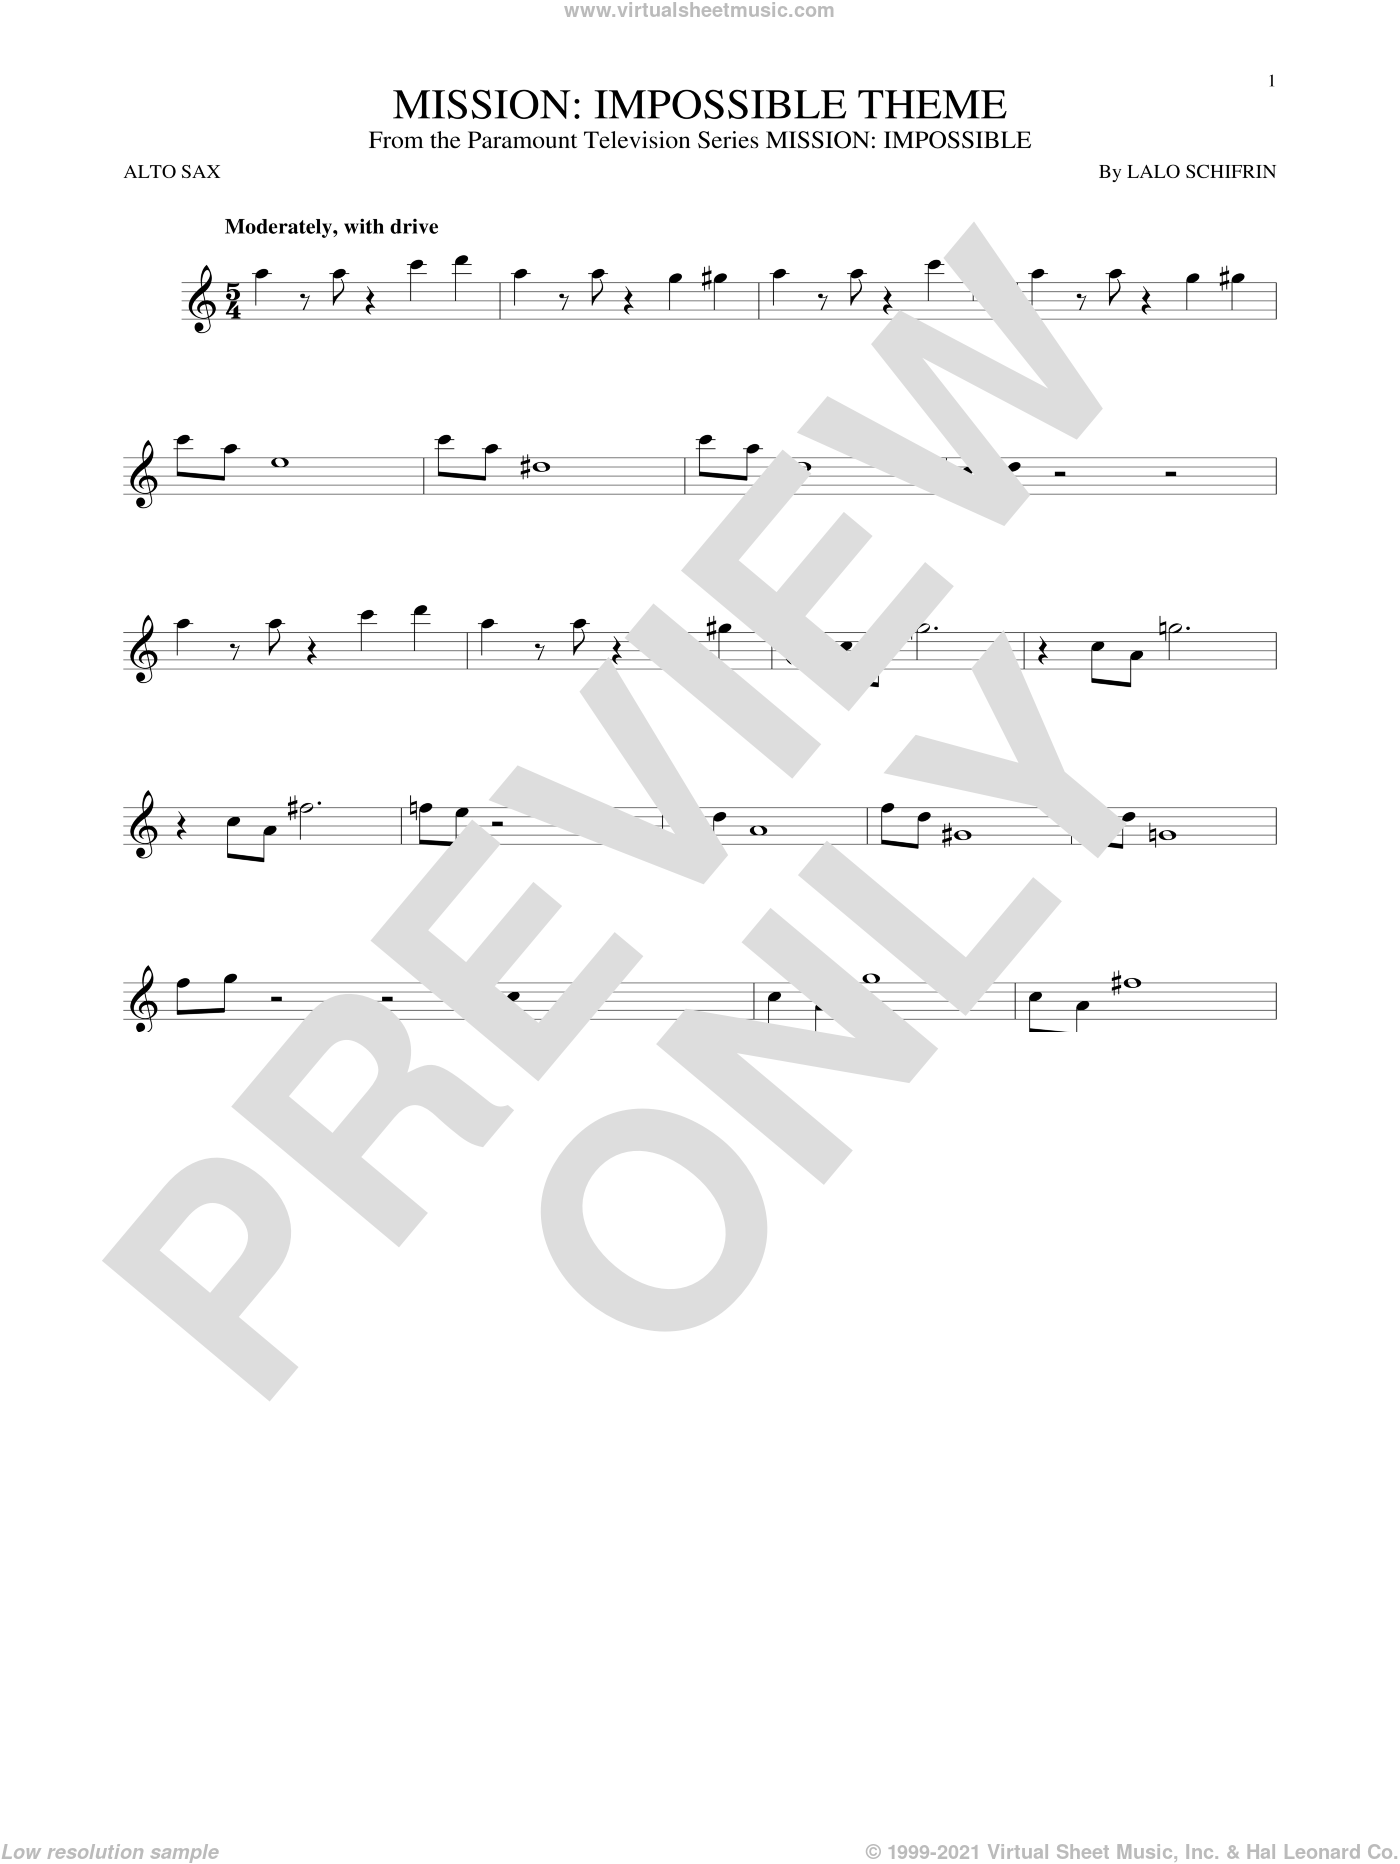 Mission: Impossible Theme sheet music for alto saxophone solo by Lalo Schifrin, intermediate skill level